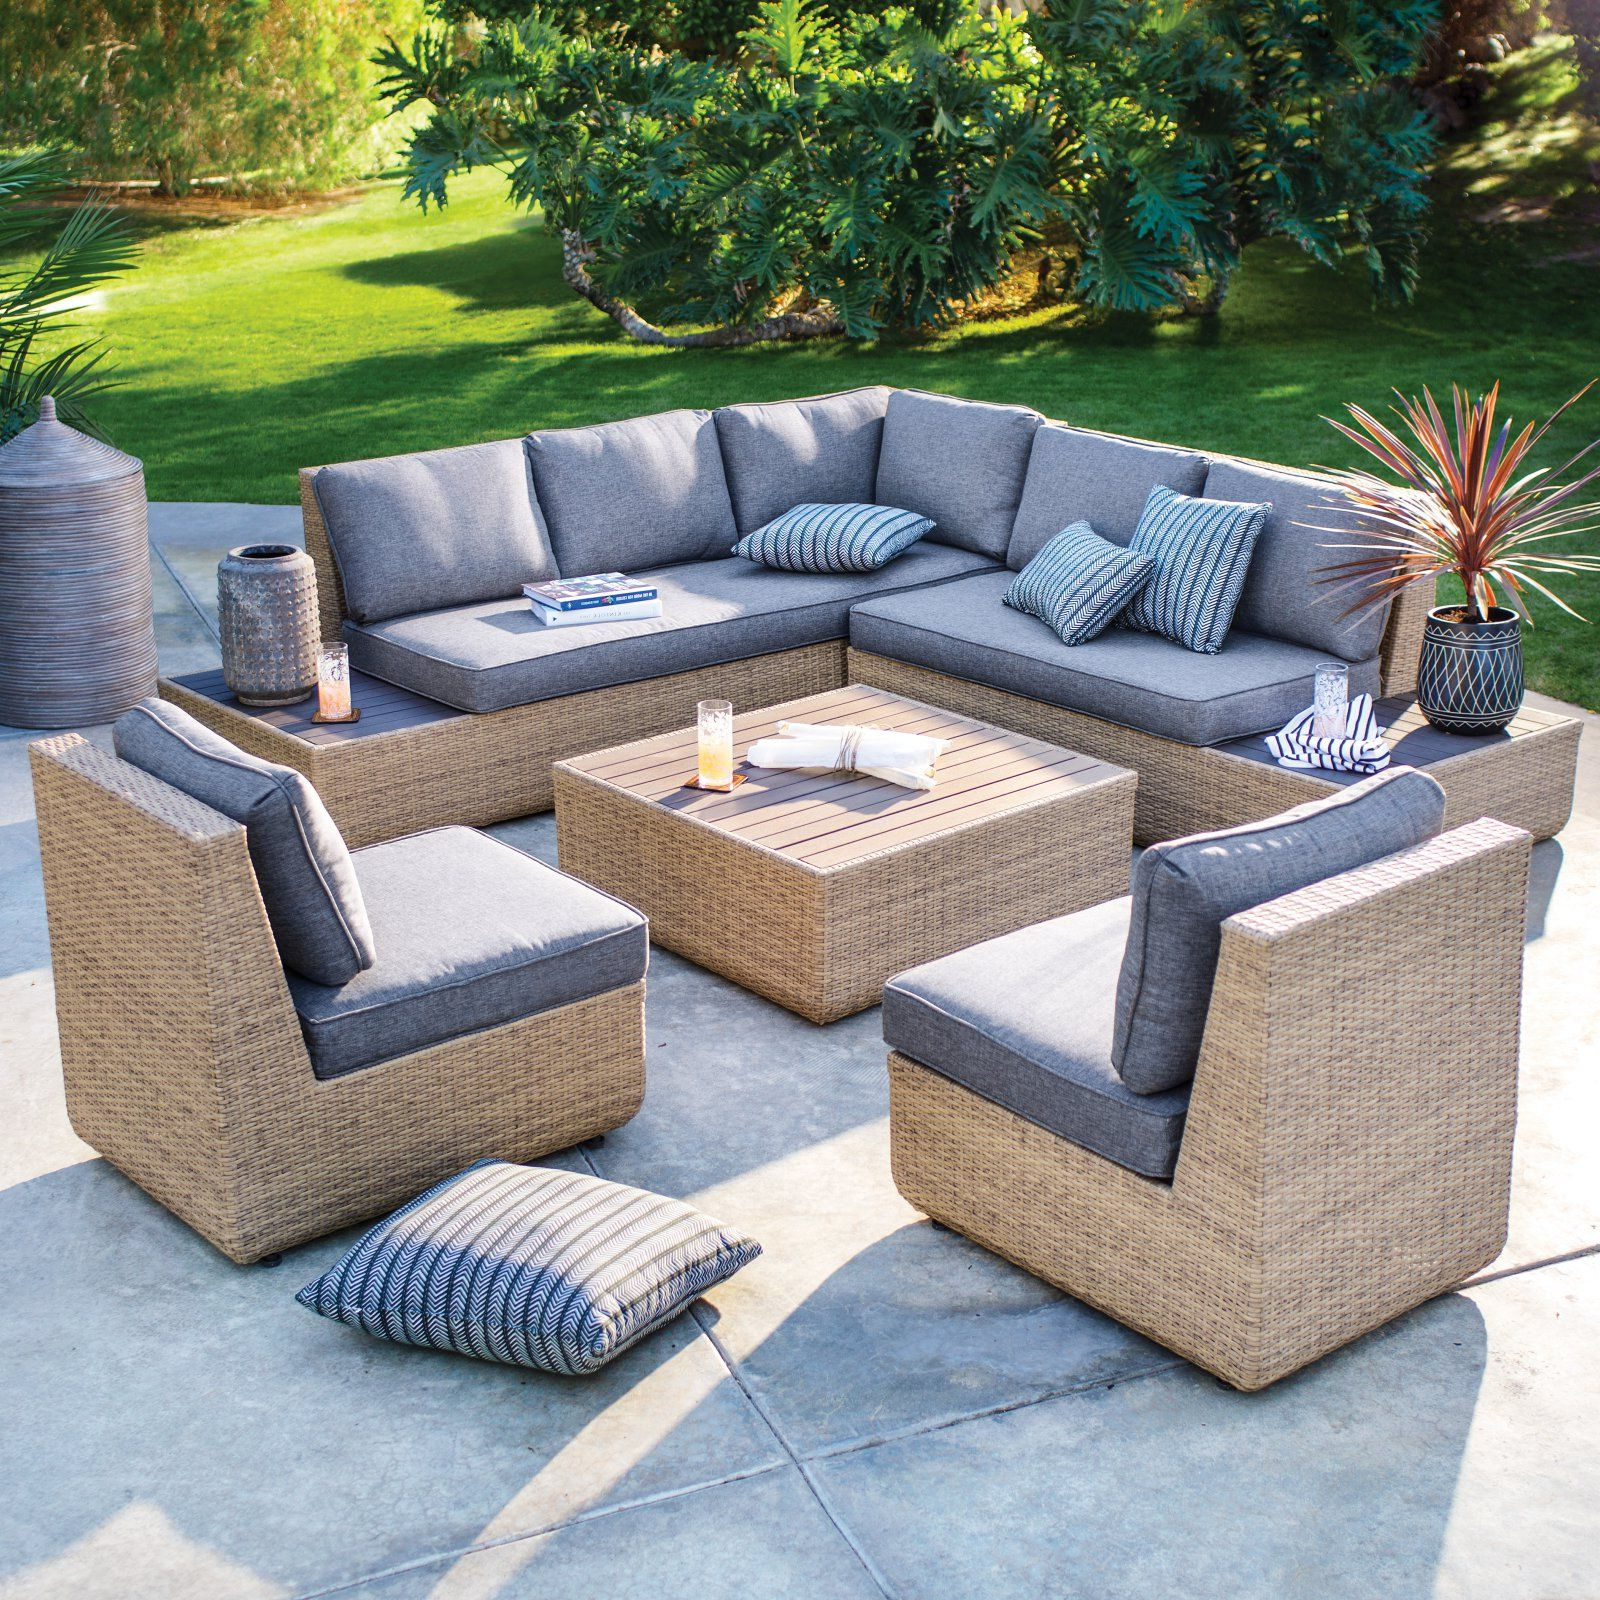 Outdoor Belham Living Luciana Villa All Weather 5 Piece Throughout Popular Rowley Patio Sofas Set With Cushions (View 9 of 20)